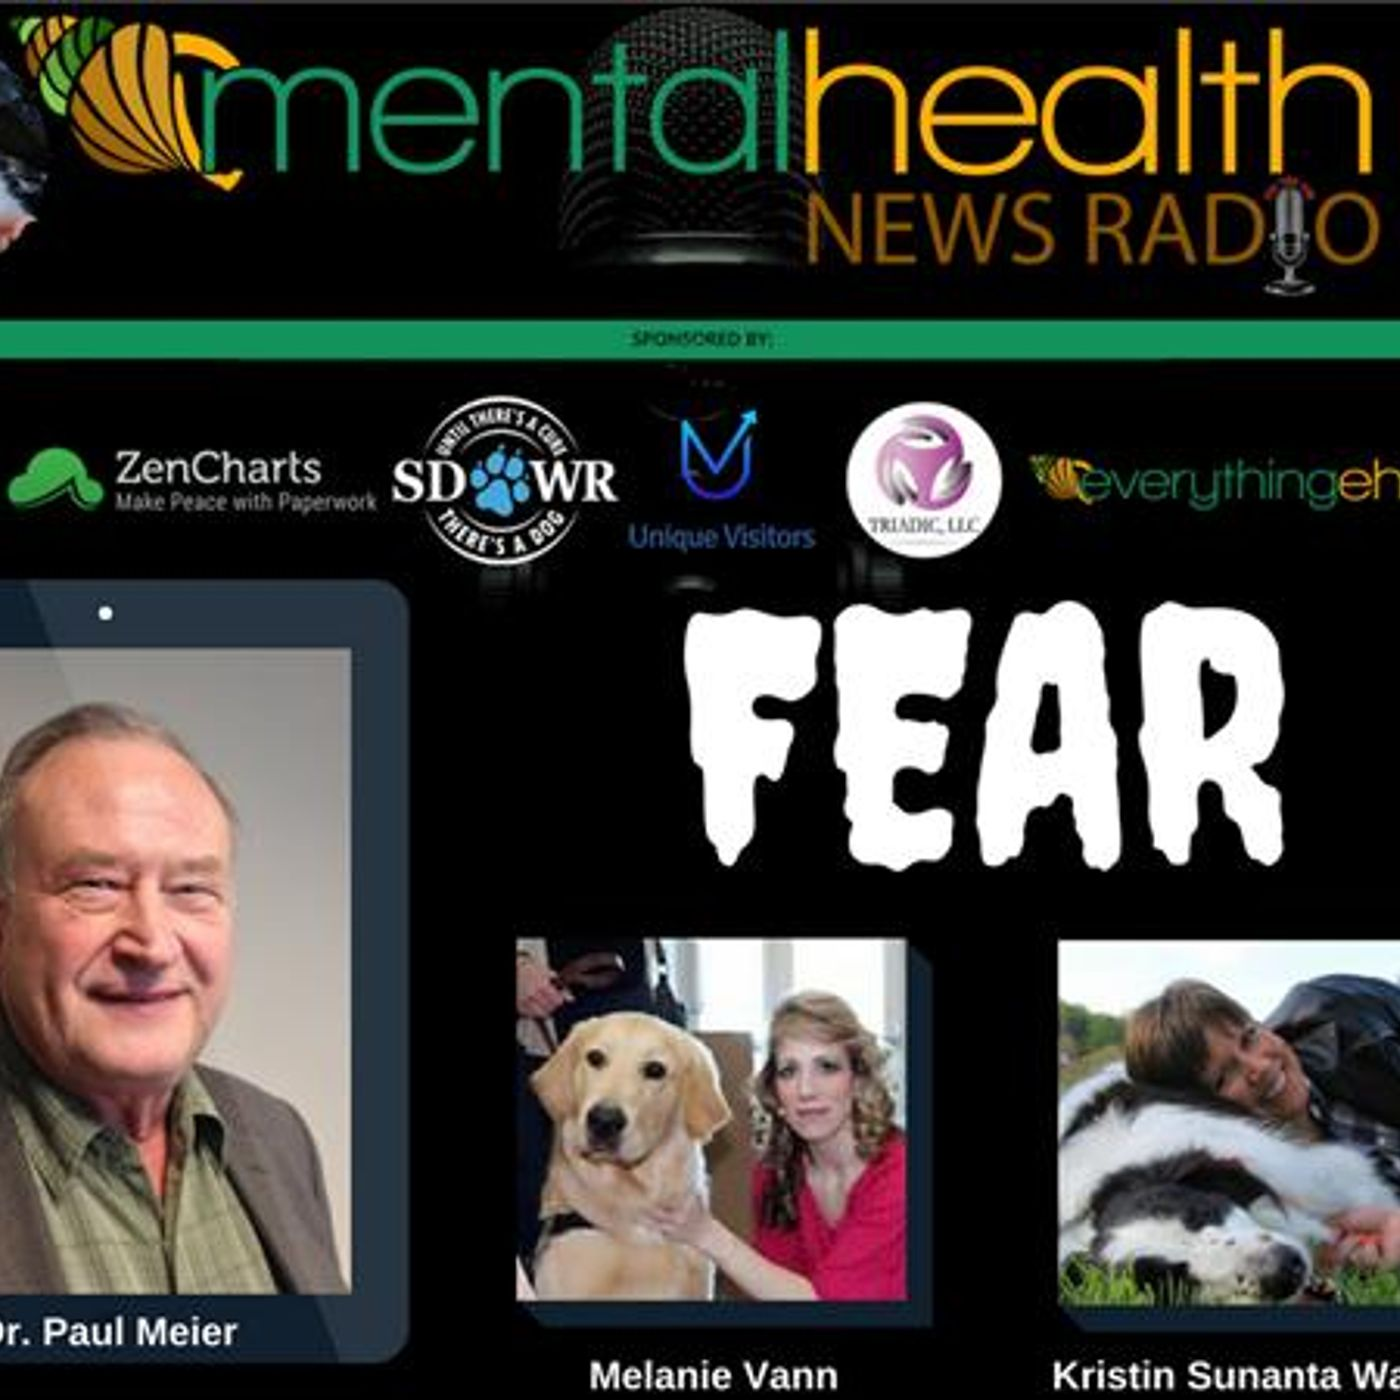 Mental Health News Radio - Round Table Discussions with Dr. Paul Meier: FEAR